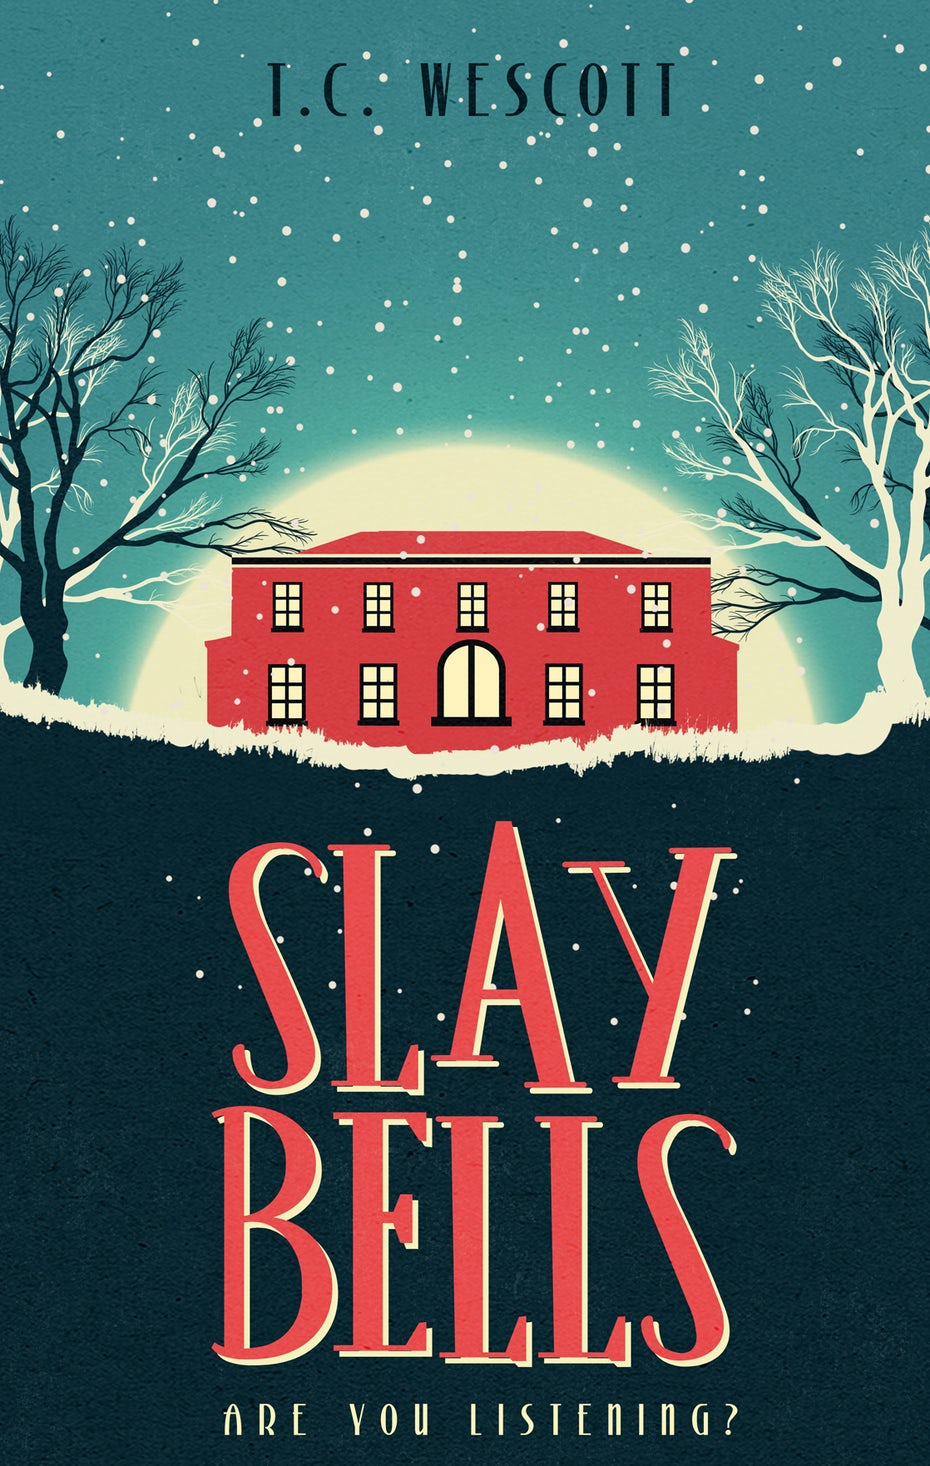 Slay bells book cover